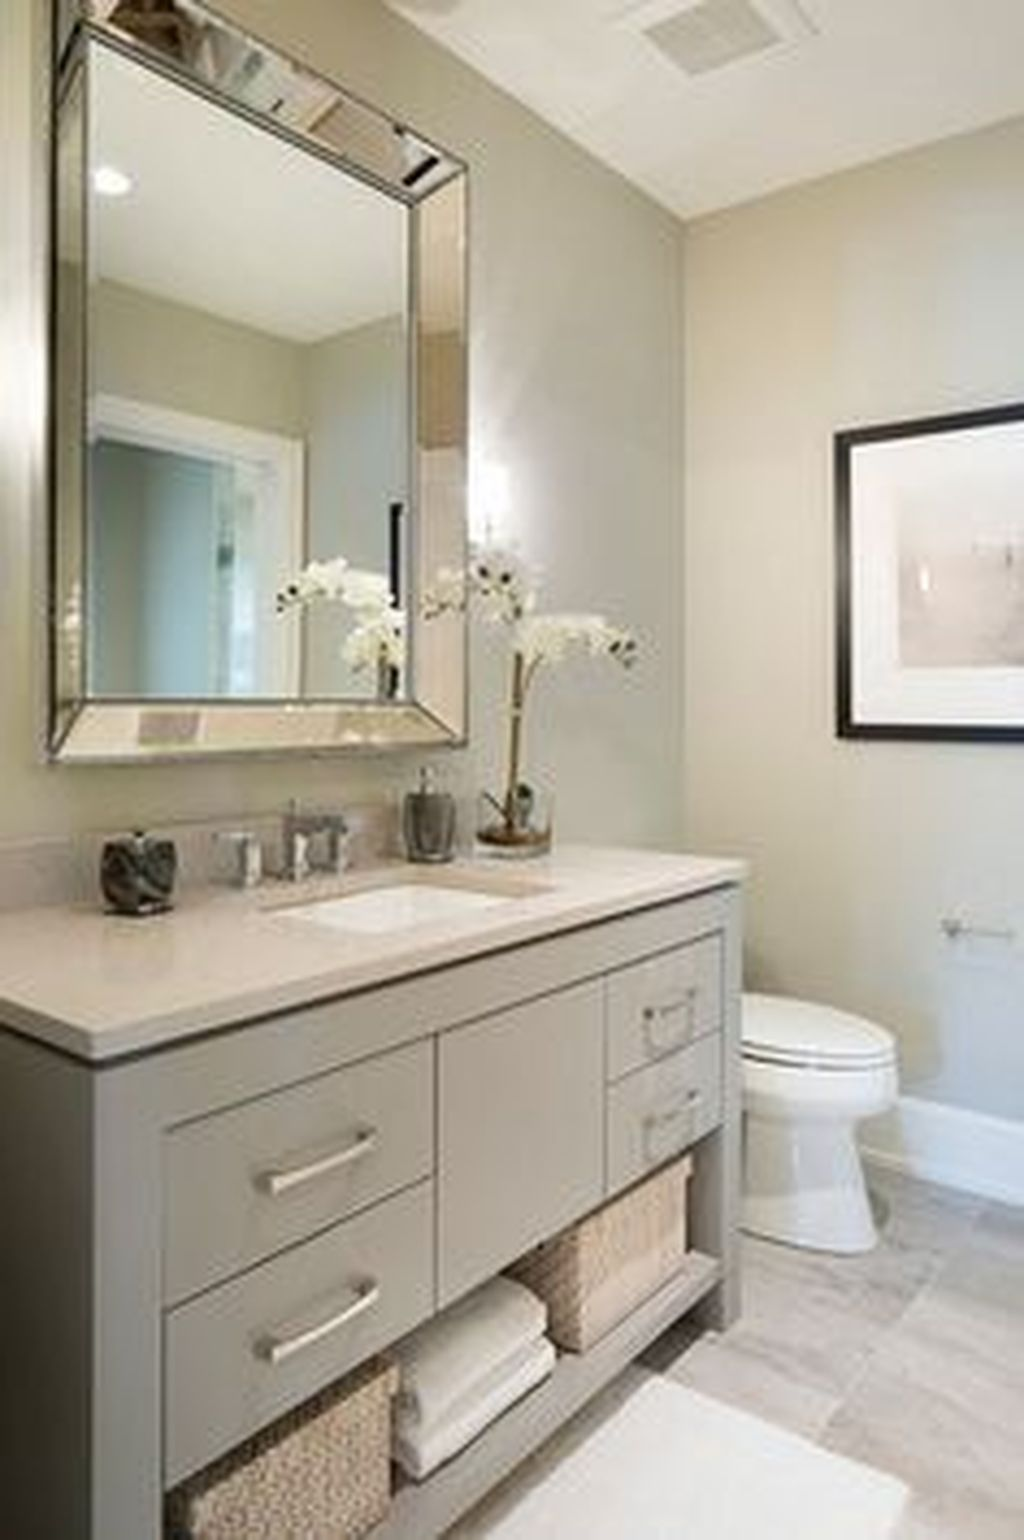 Bathroom Cabinets Tips With Images Guest Bathroom Remodel